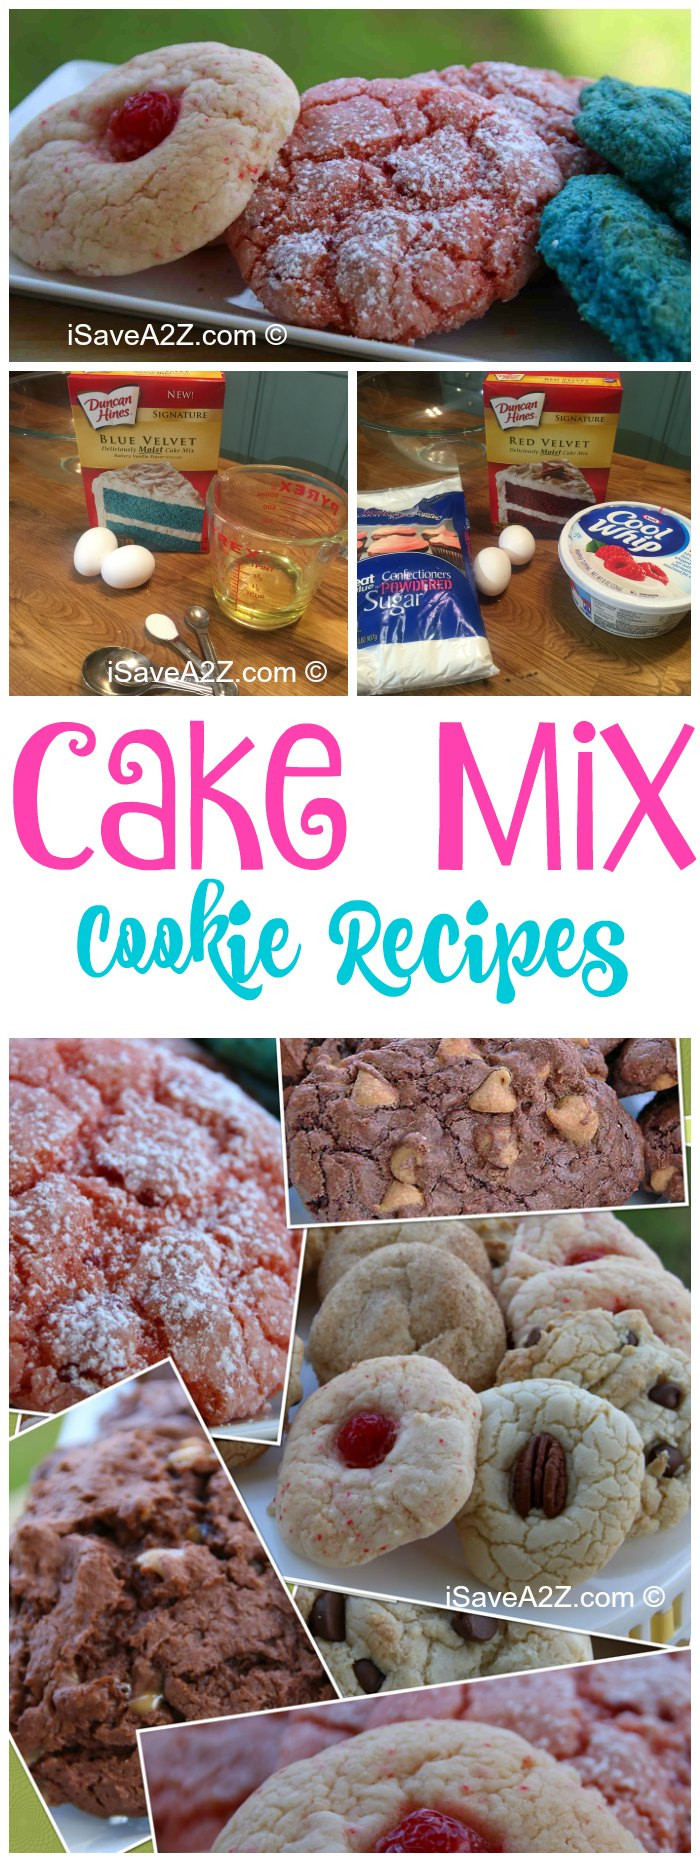 Cake Mix Cookie Recipe  Top 45 Recipe Variations for Cake Mix Cookies iSaveA2Z